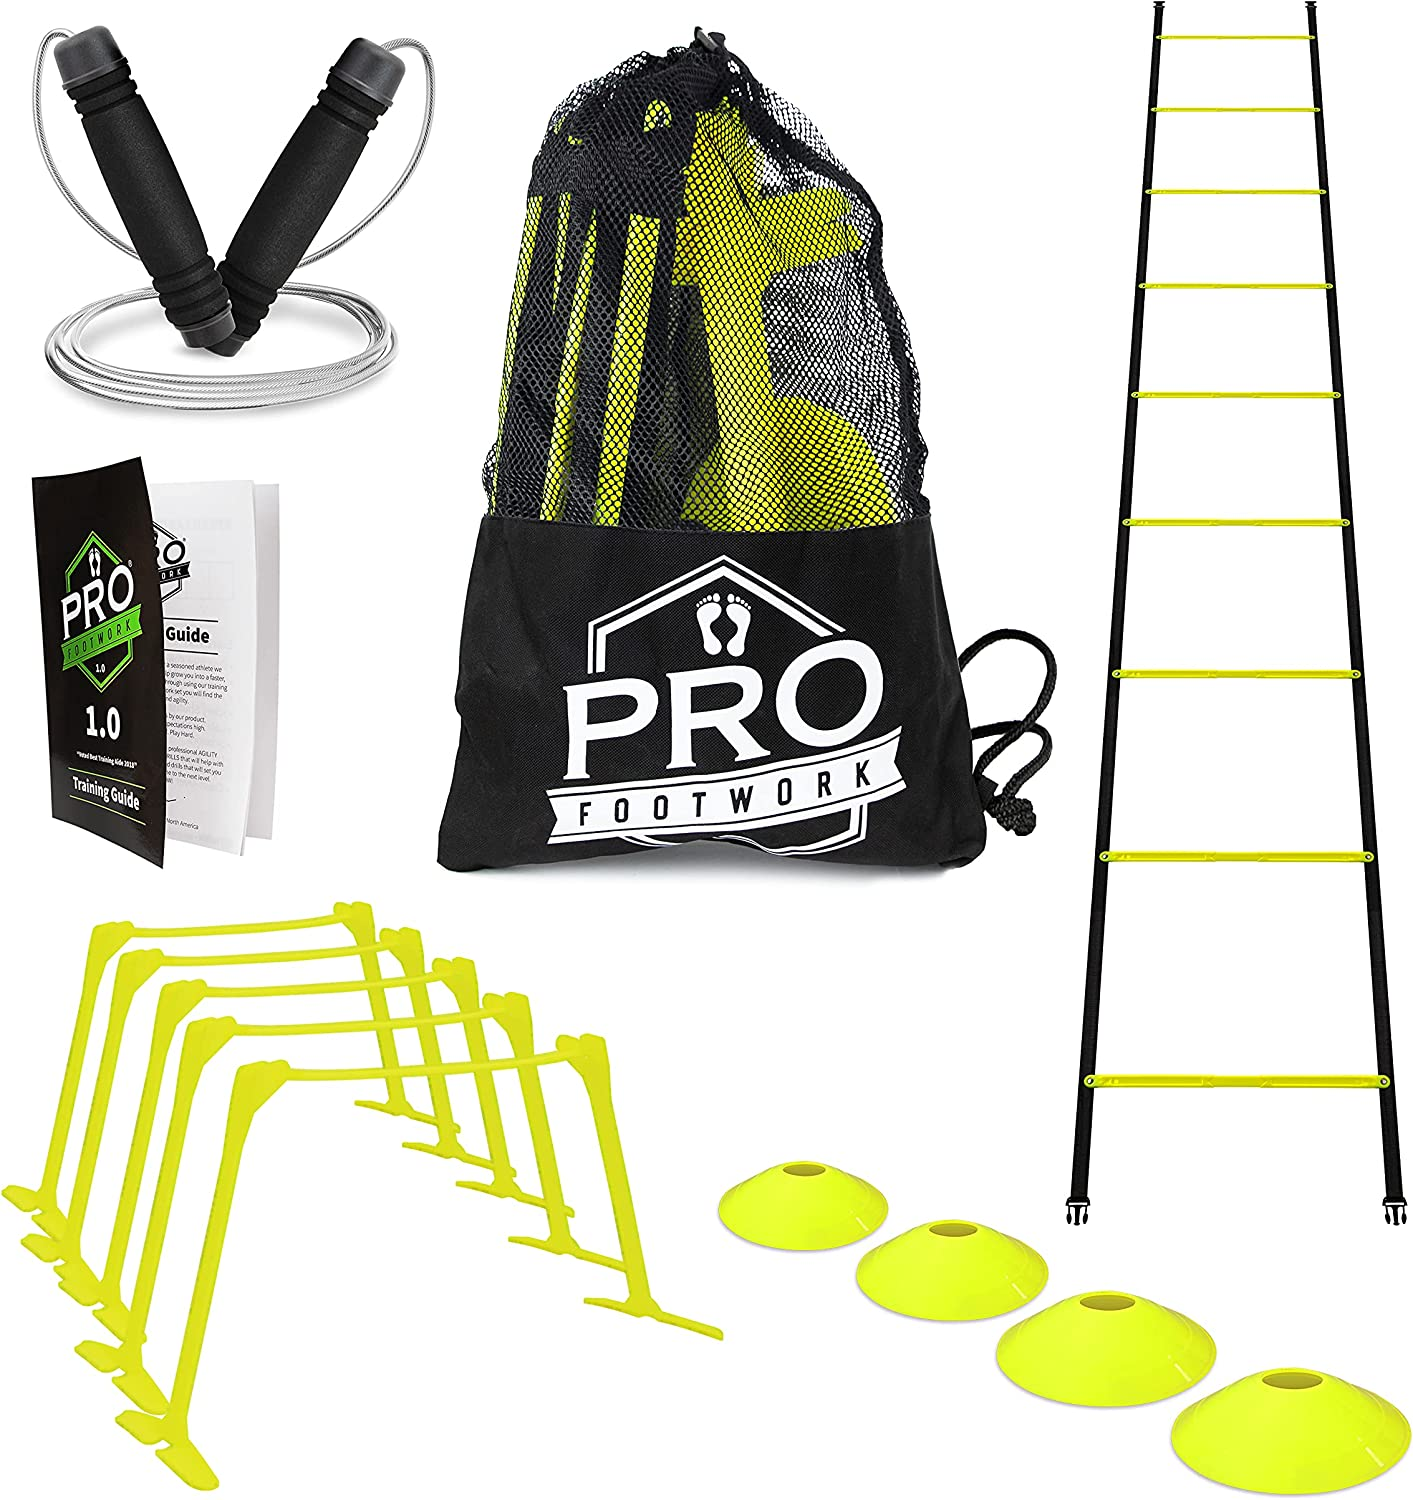 Pro Footwork Agility Spring new work Ladder and Hurdle Bundle In Industry No. 1 Training by Set